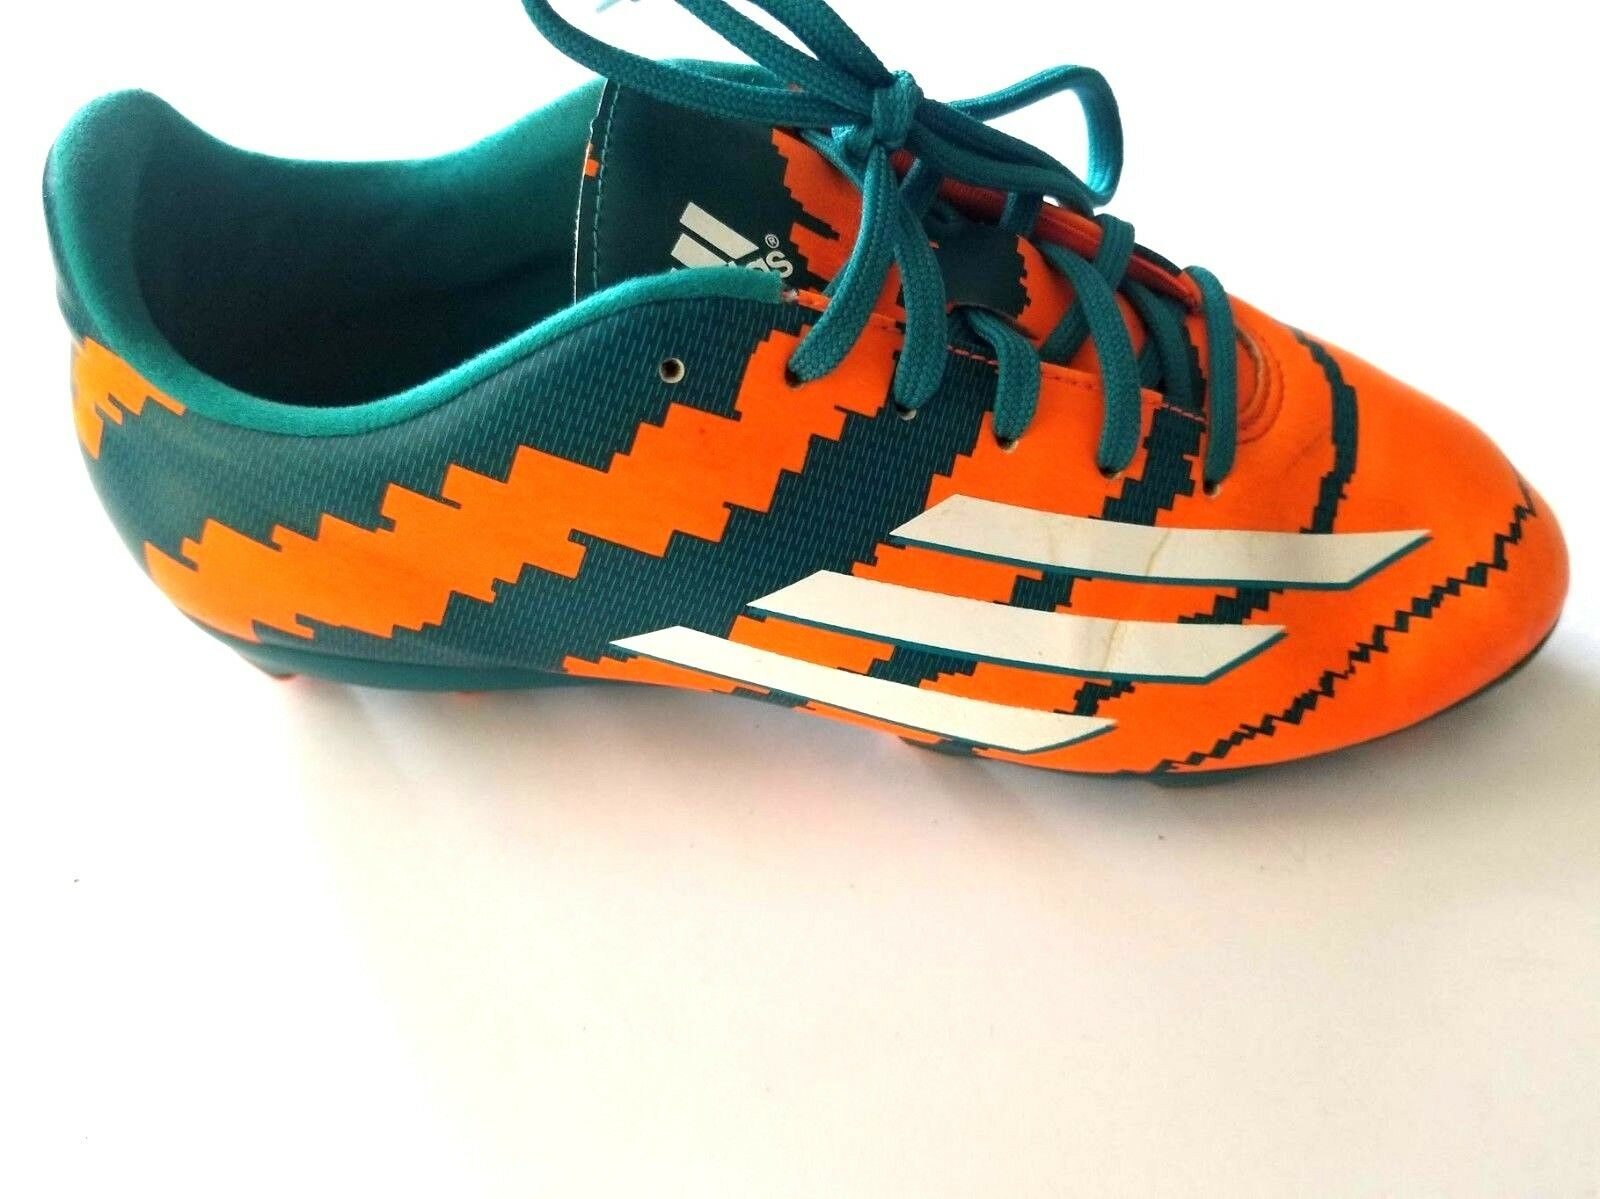 Adidas Athletic Soccer Sneaker Orange Green Shoes Mens Comfortable best-selling model of the brand